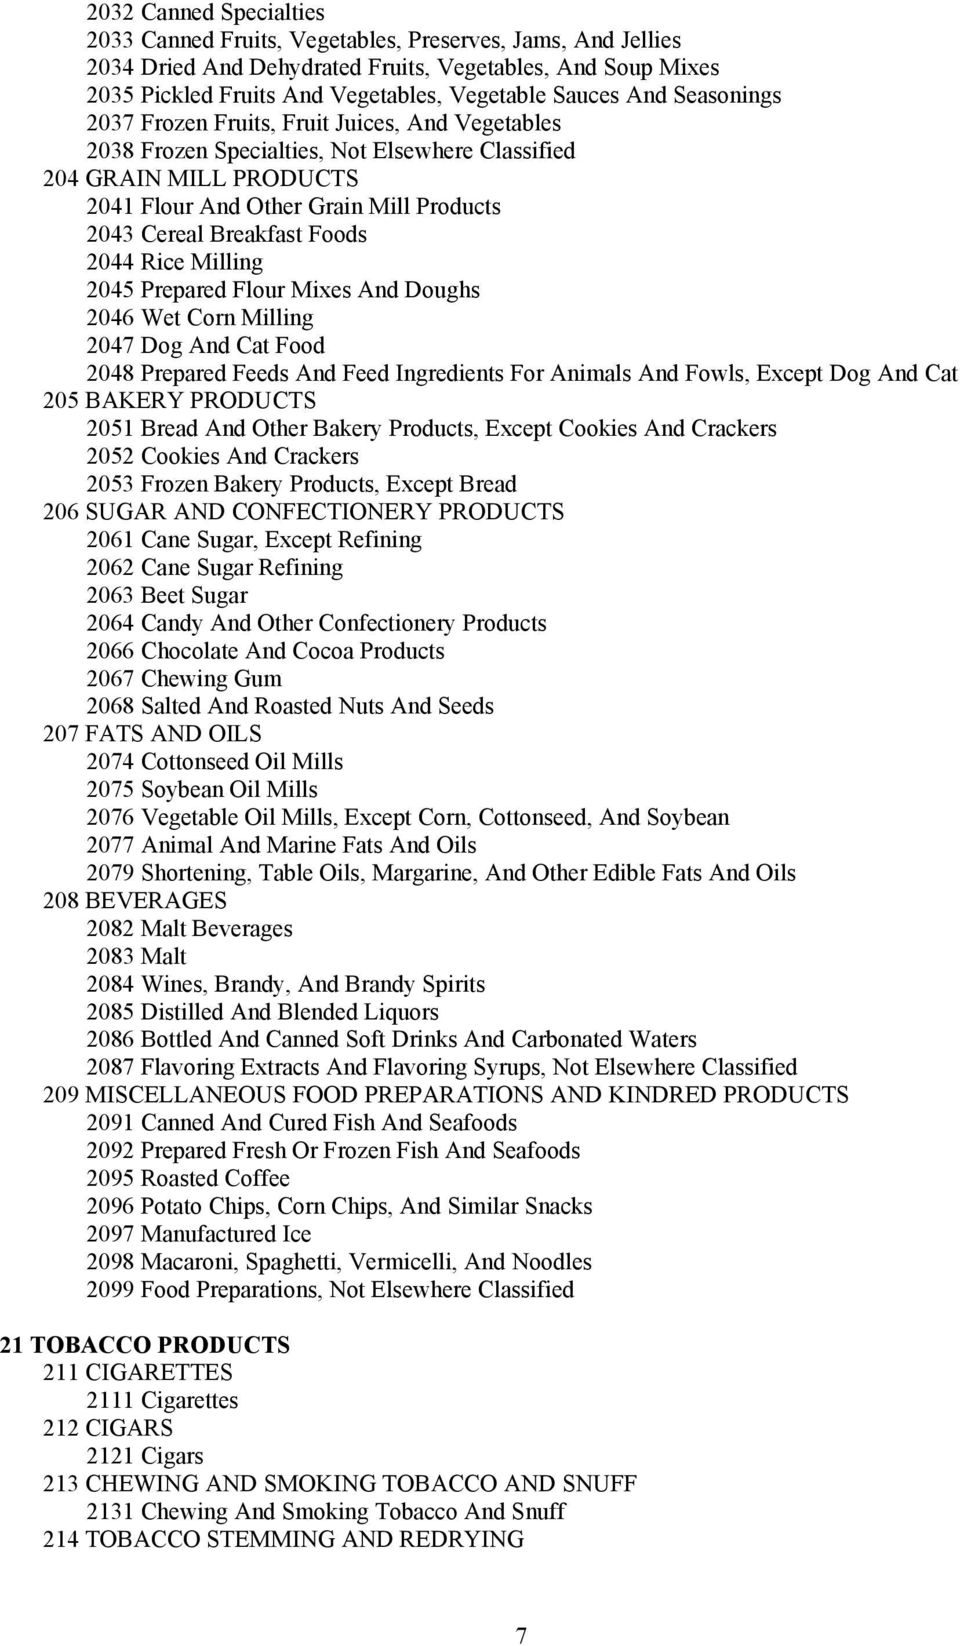 Breakfast Foods 2044 Rice Milling 2045 Prepared Flour Mixes And Doughs 2046 Wet Corn Milling 2047 Dog And Cat Food 2048 Prepared Feeds And Feed Ingredients For Animals And Fowls, Except Dog And Cat